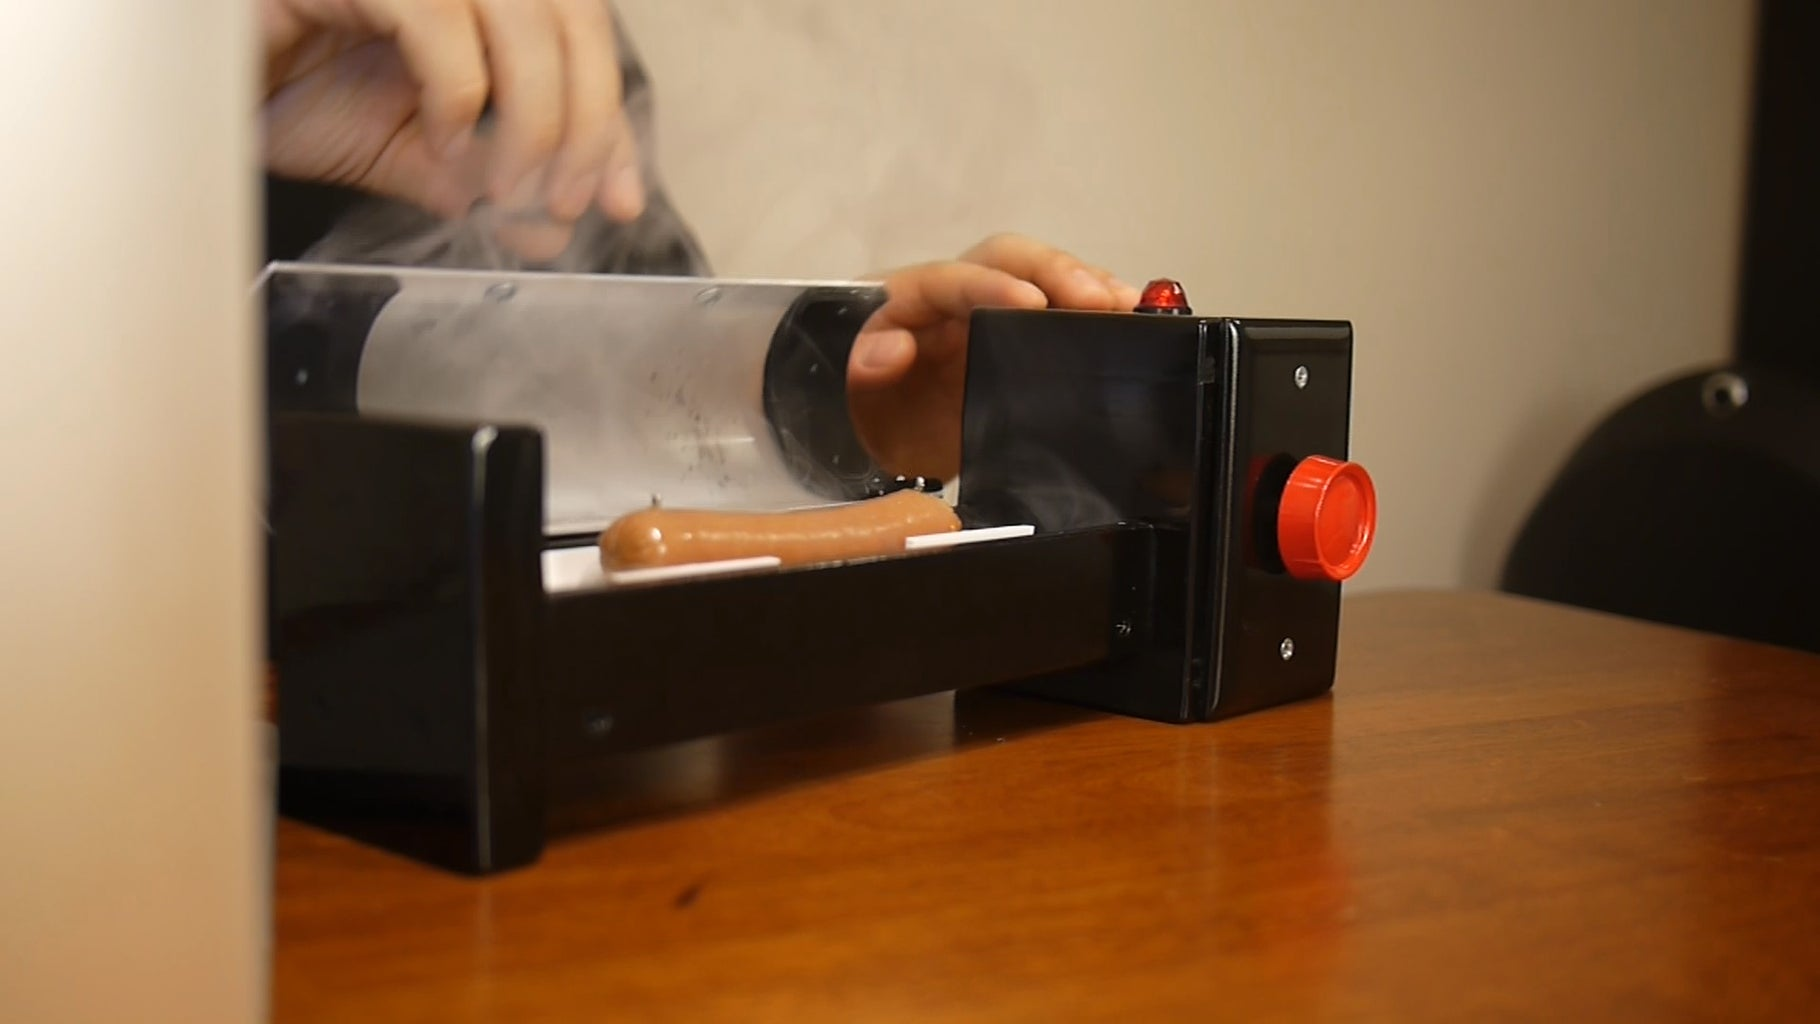 Testing the Hot Dog Cooker